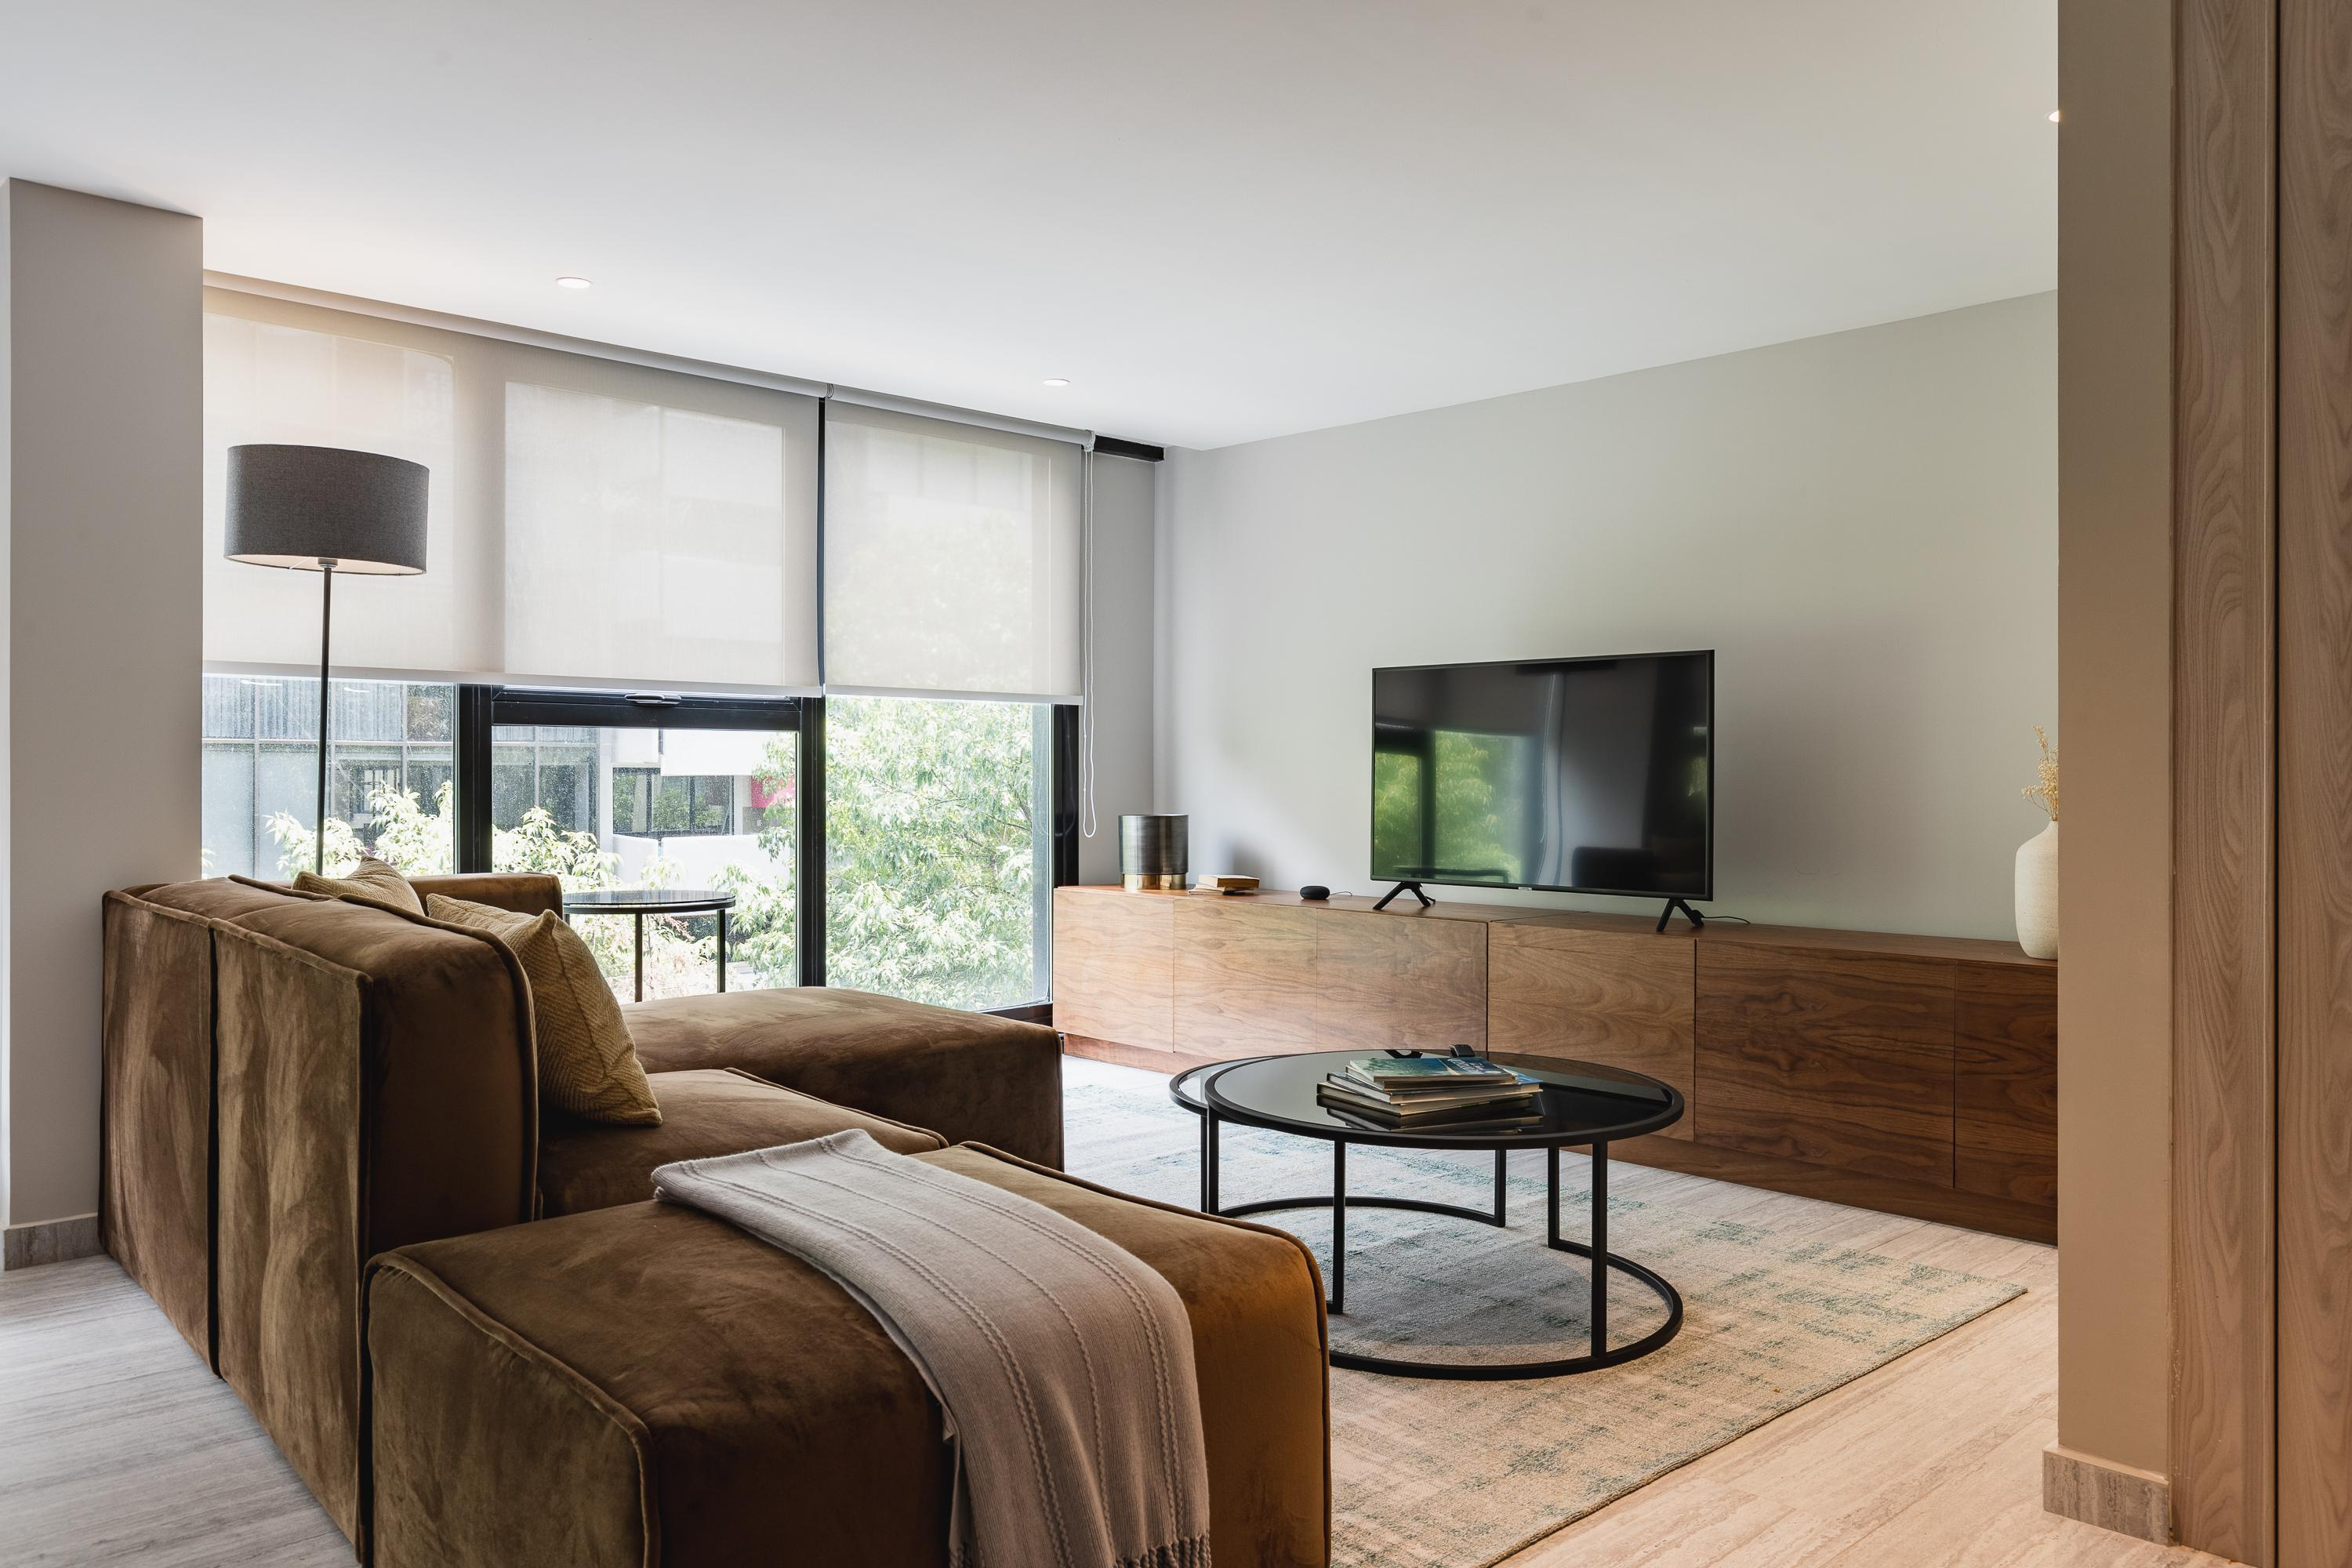 Property Image 1 - Polanco Chic Radiant Apartment with Queen Size Bed